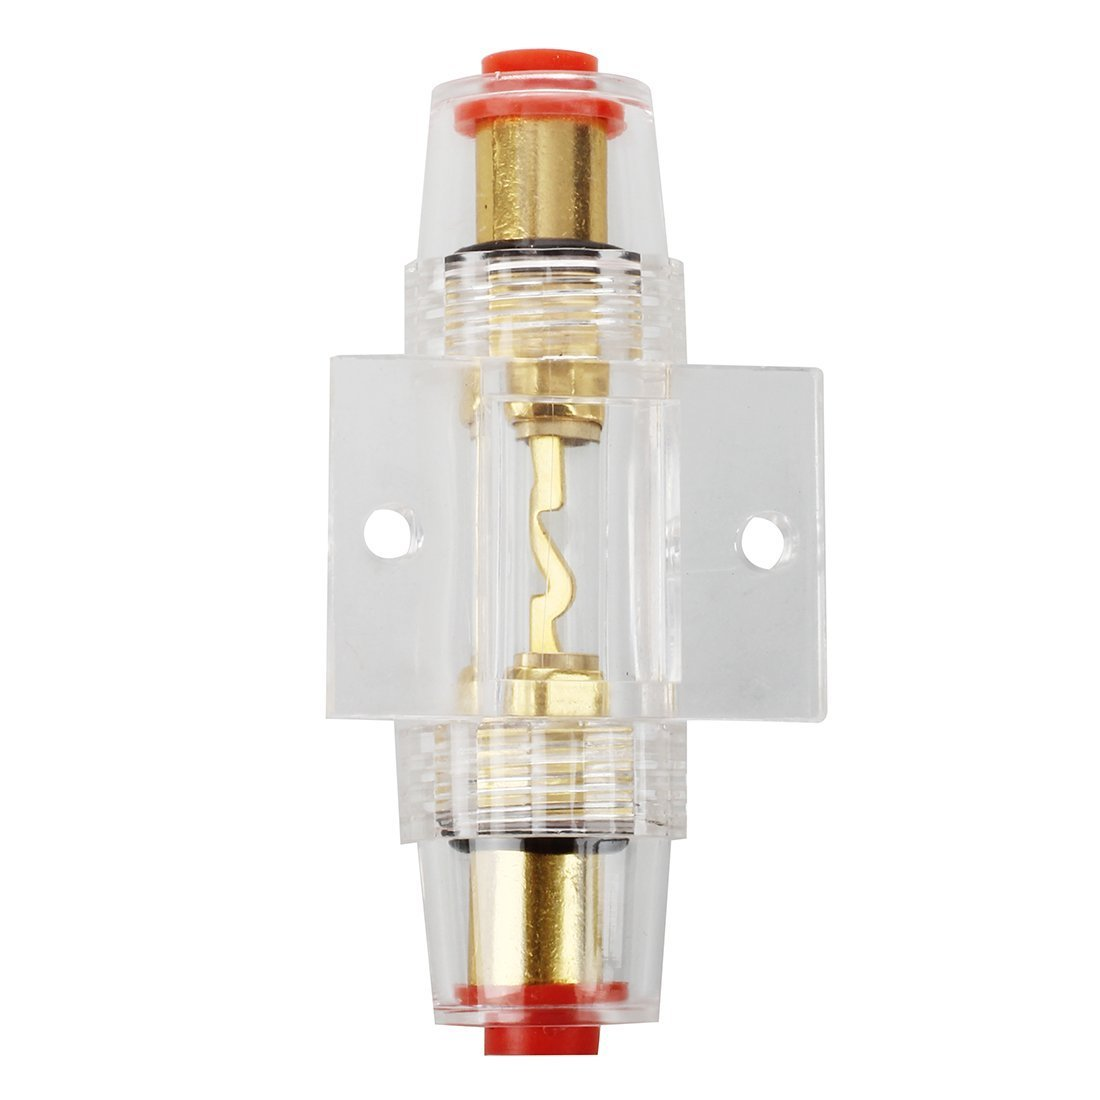 TOOGOO(R) 4/8 Gauge Holder Agu Fuse 80A Car Audio Parte Elettronica LEPACA1393